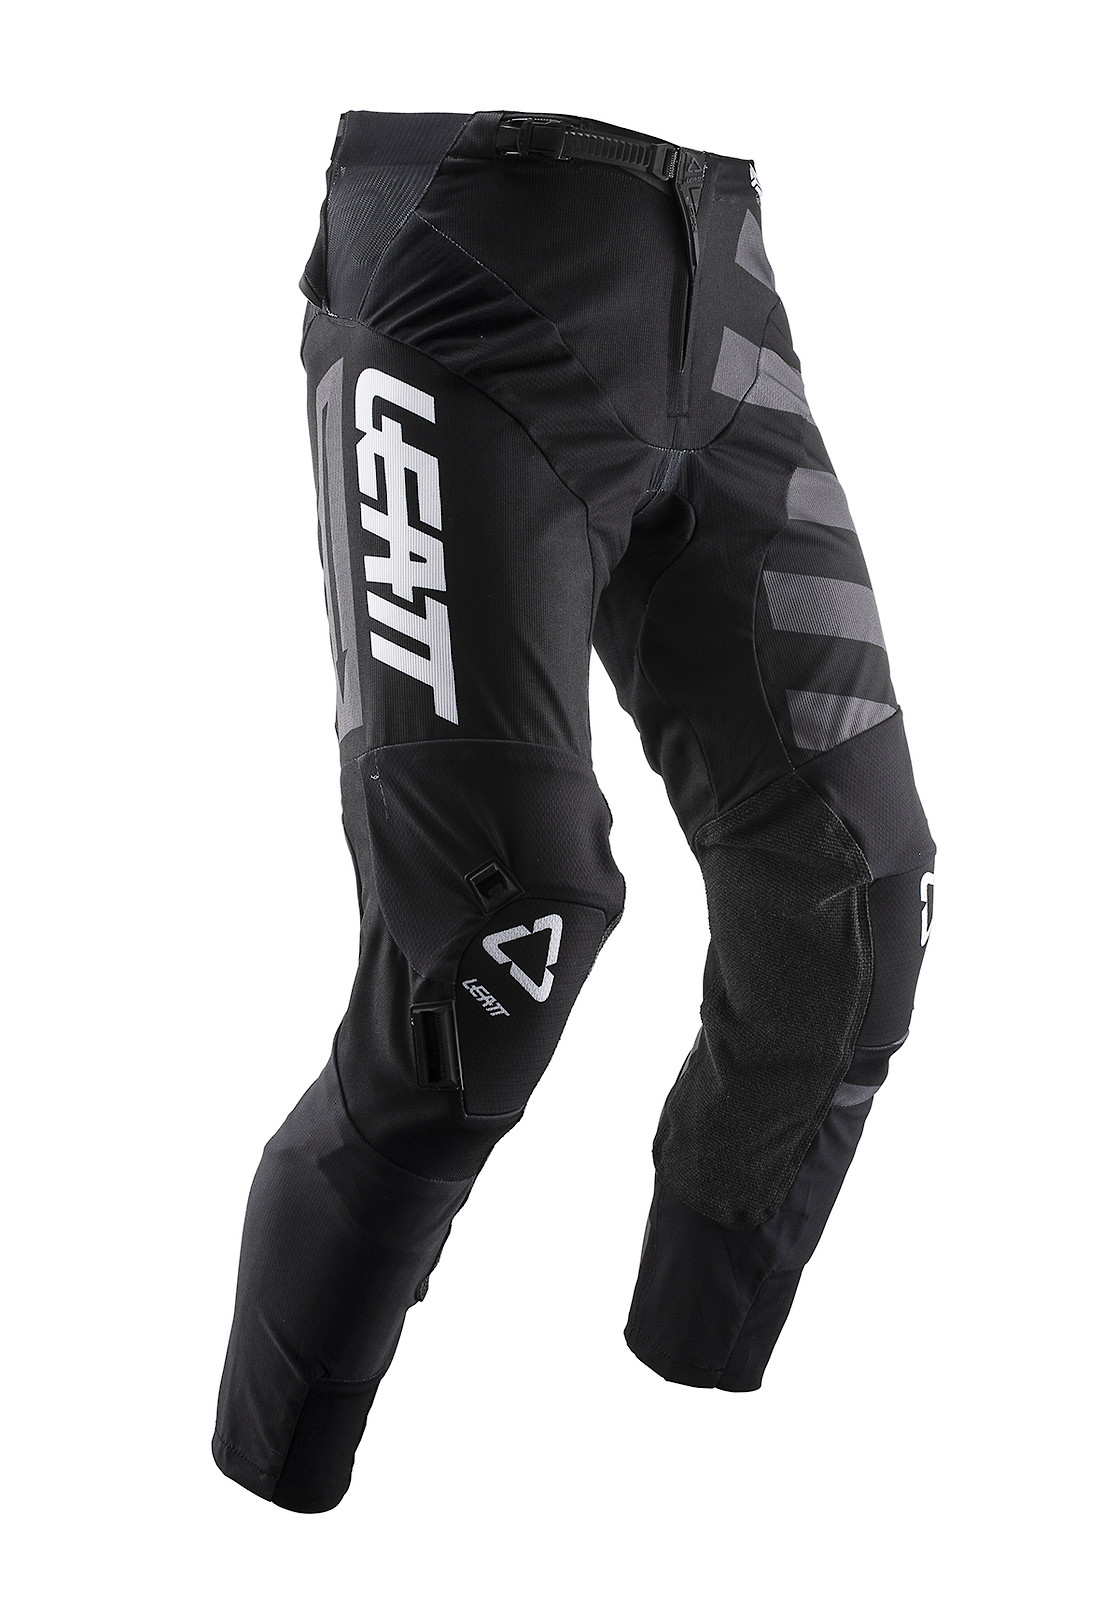 Leatt_Pant_GPX_5.5I.K.S_Black_FrontLeft_5019020120